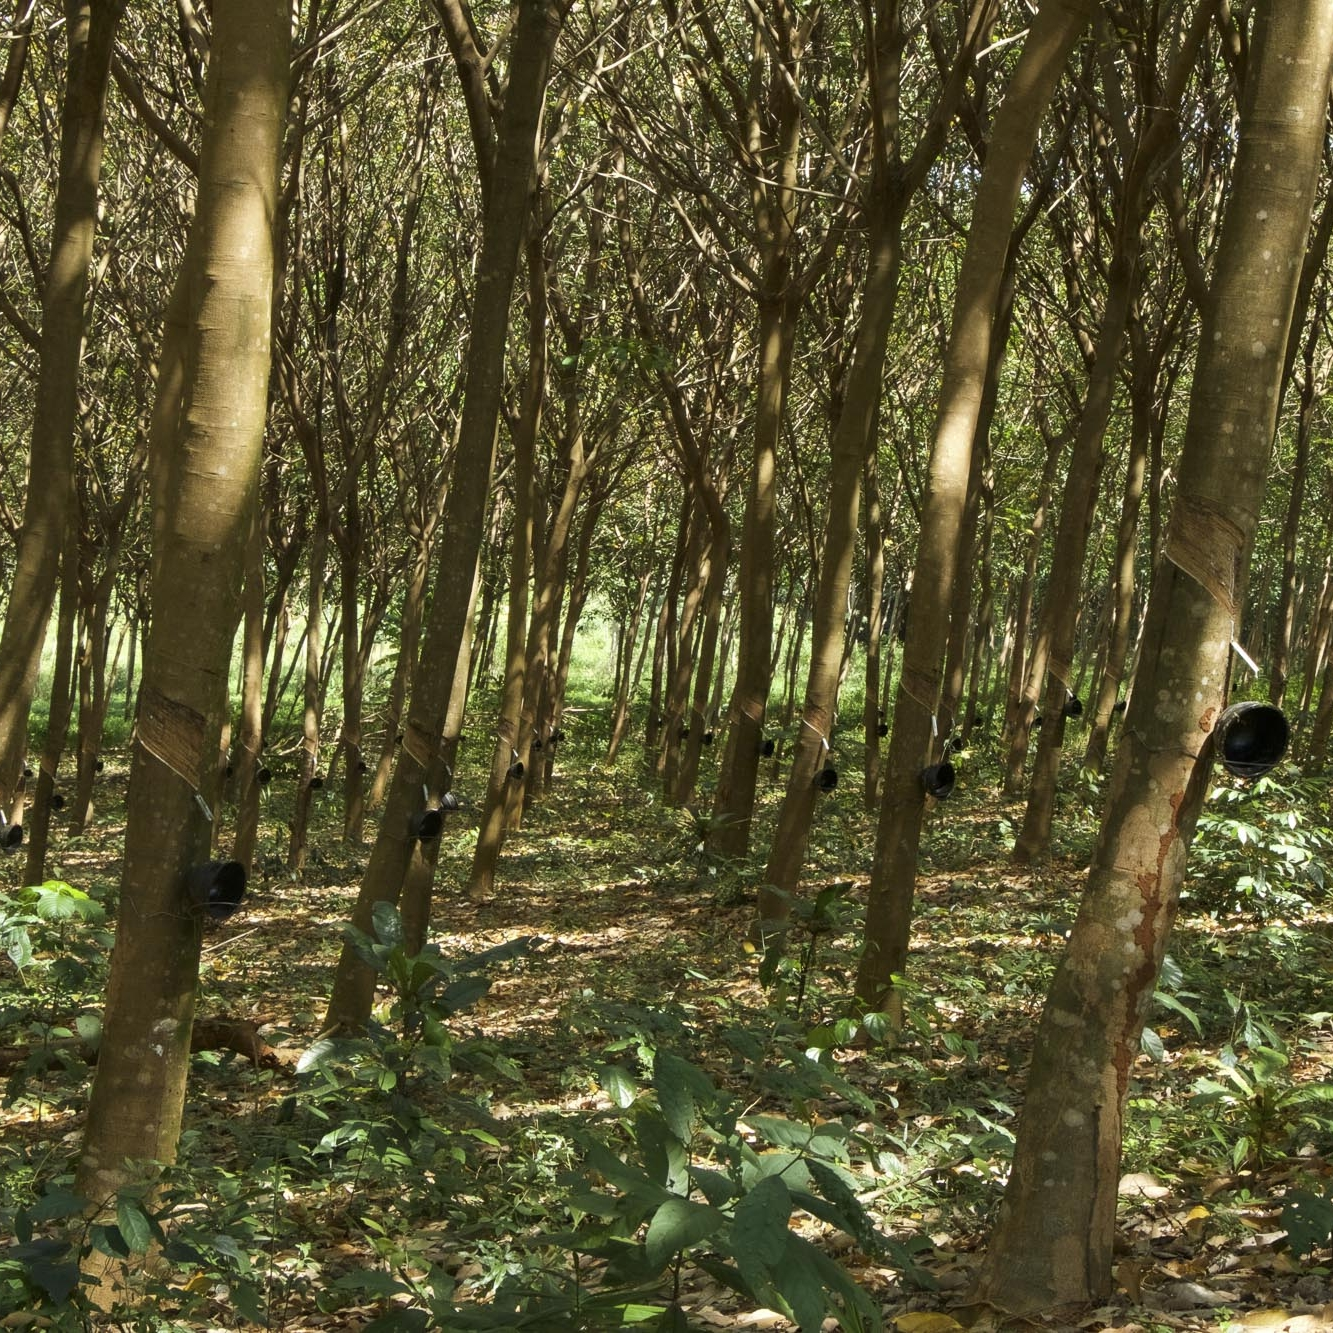 rubber trees ready to be harvested for foam in vancouver